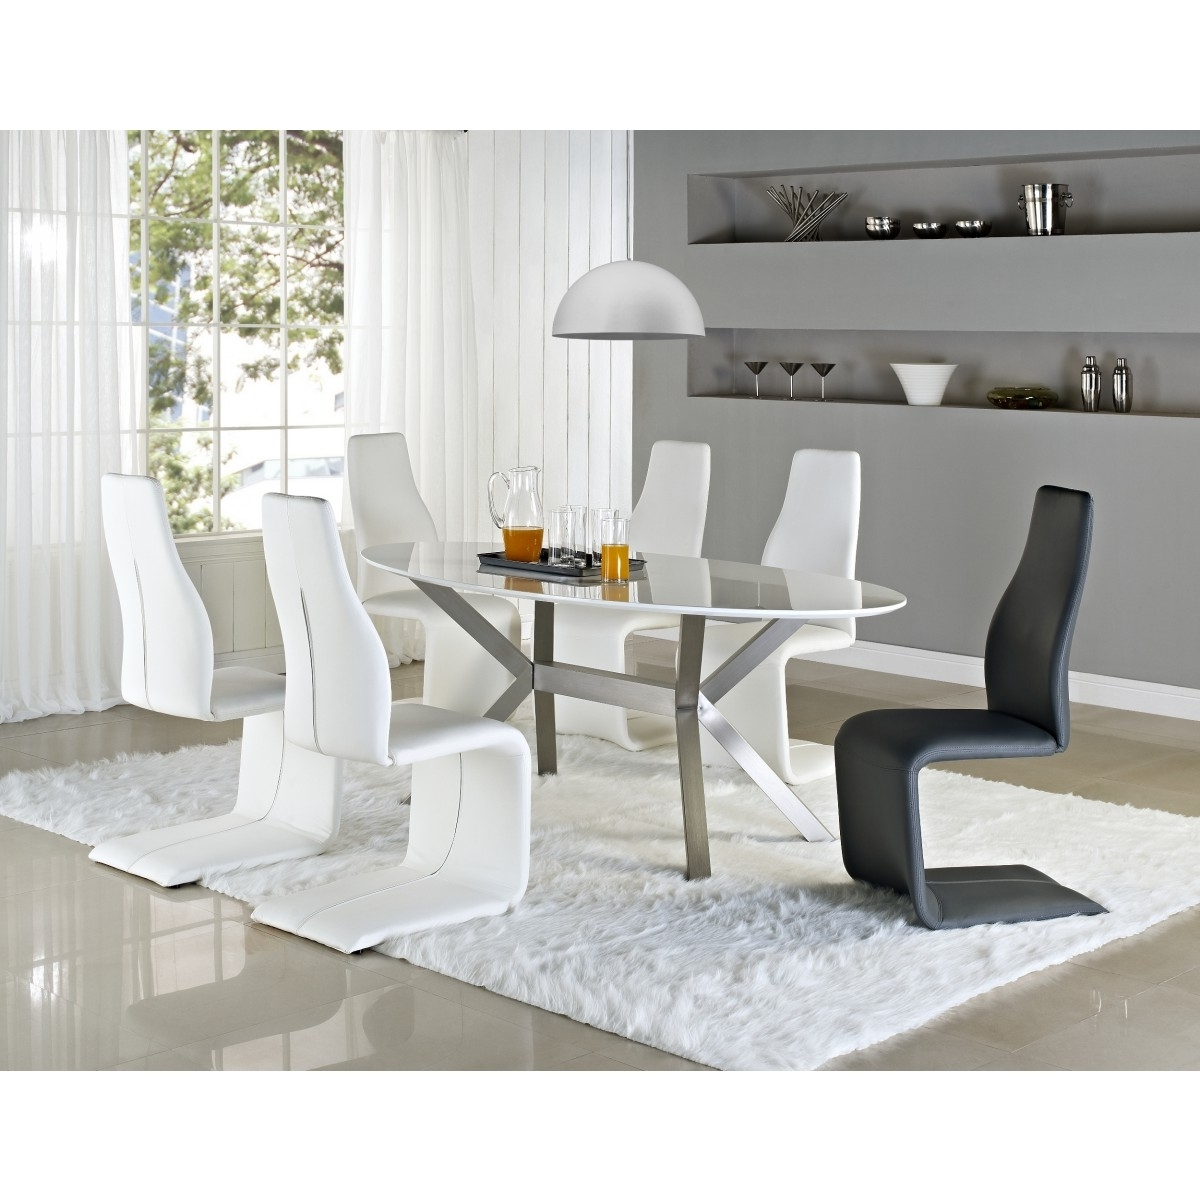 Lumen Home Designslumen Home Designs Intended For Shiny White Dining Tables (View 11 of 25)